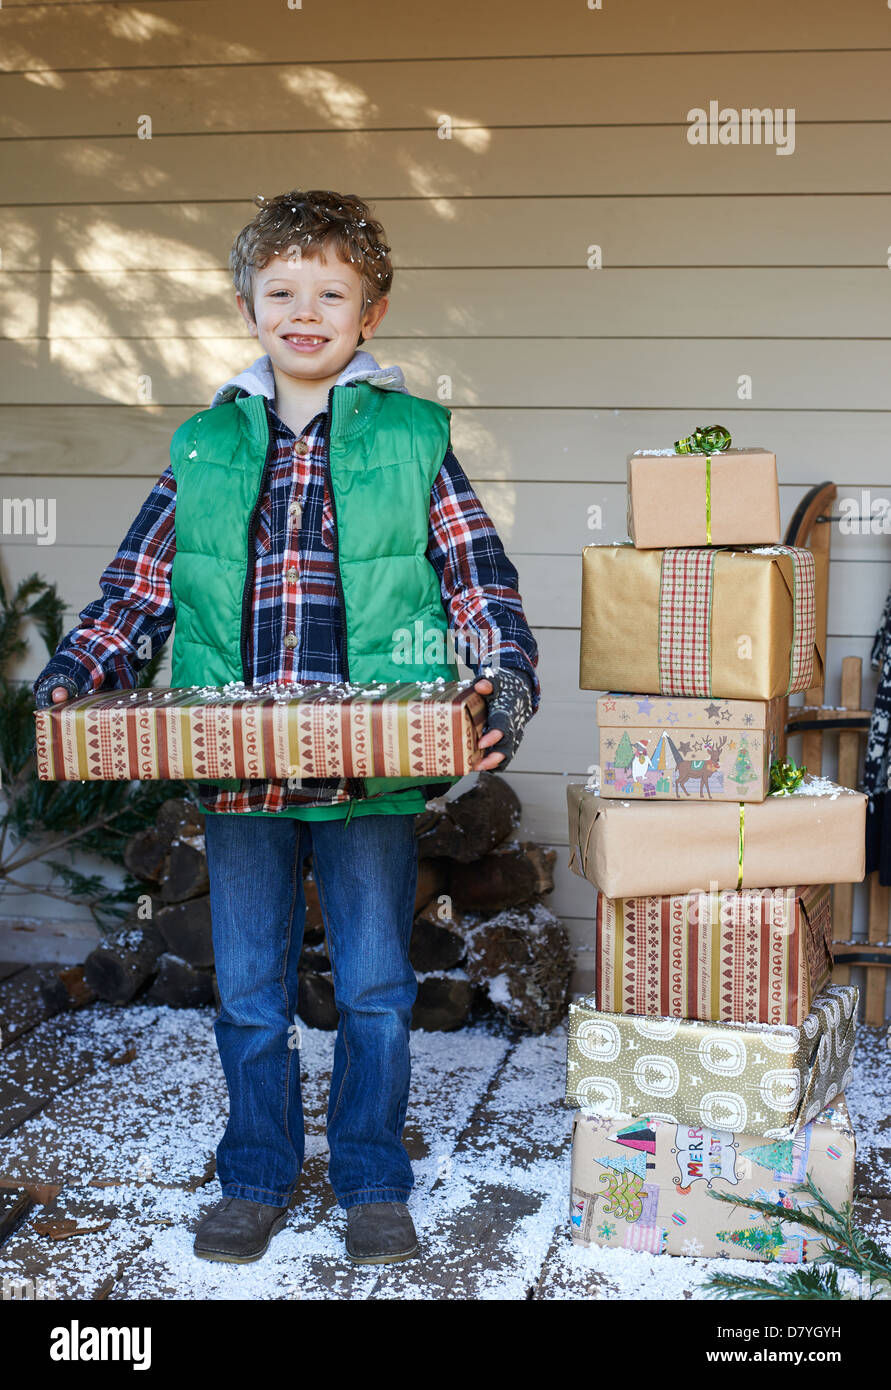 Boy holding Christmas gifts on snowy porch - Stock Image